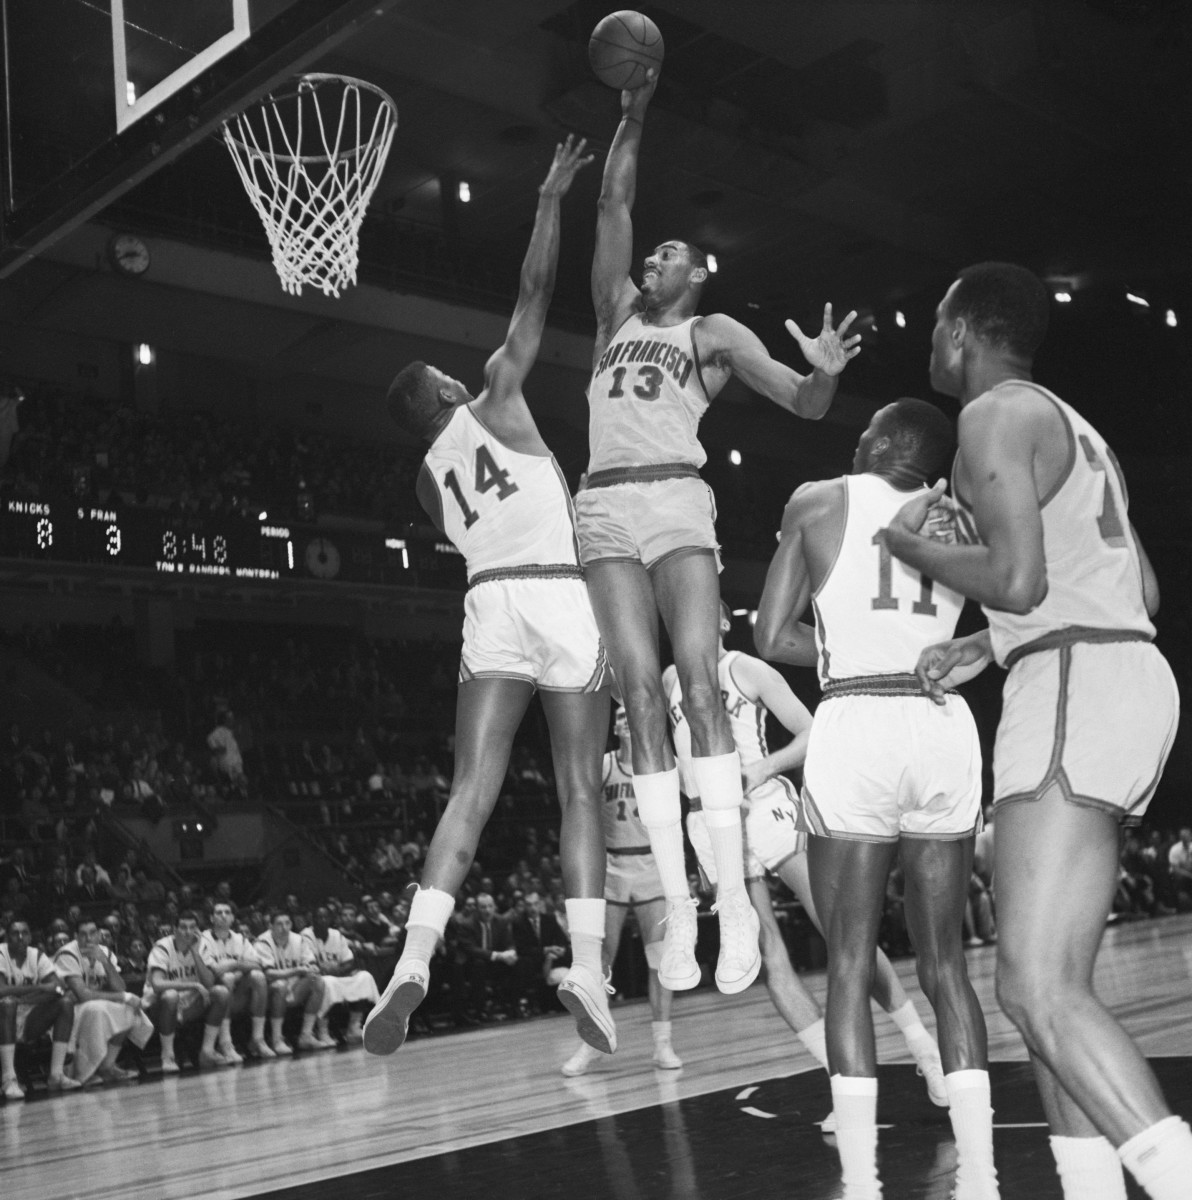 """In the season after the 100-point game, on Dec. 29, 1962, the Knicks held Chamberlain to """"only"""" 33 points but lost, 114-109. Photo: Bettmann/Getty Images"""